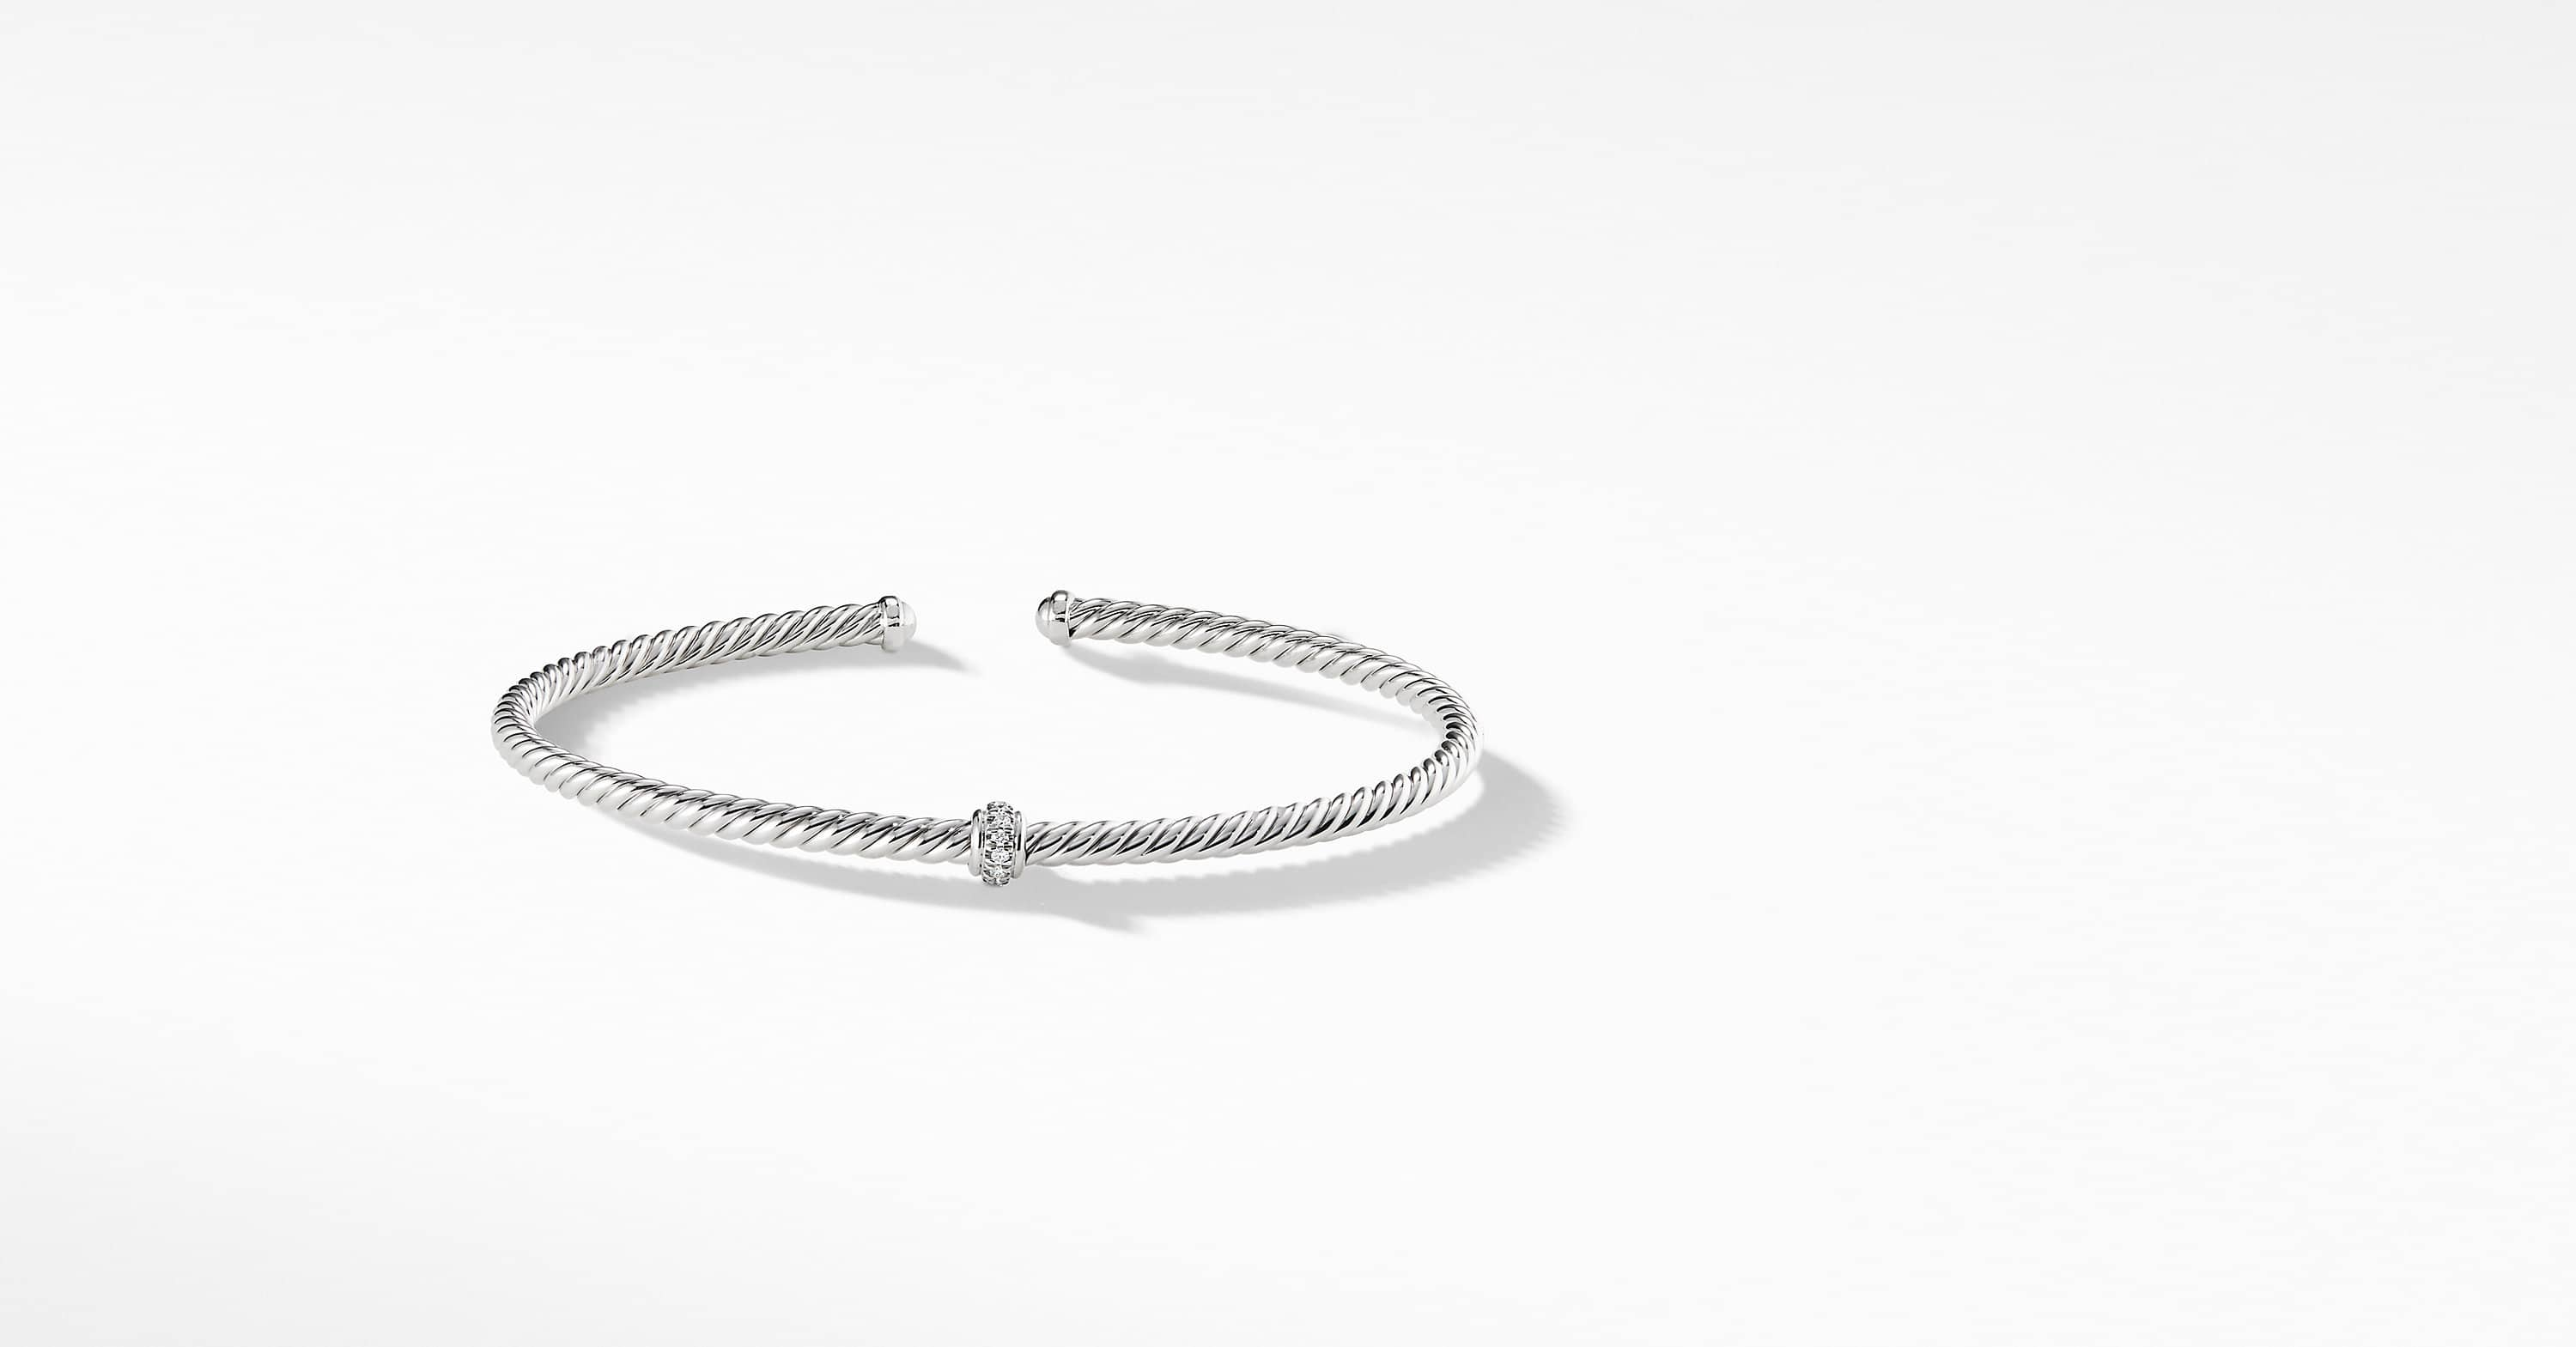 Cable Spira Center Station Bracelet in 18K White Gold with Diamonds, 3mm